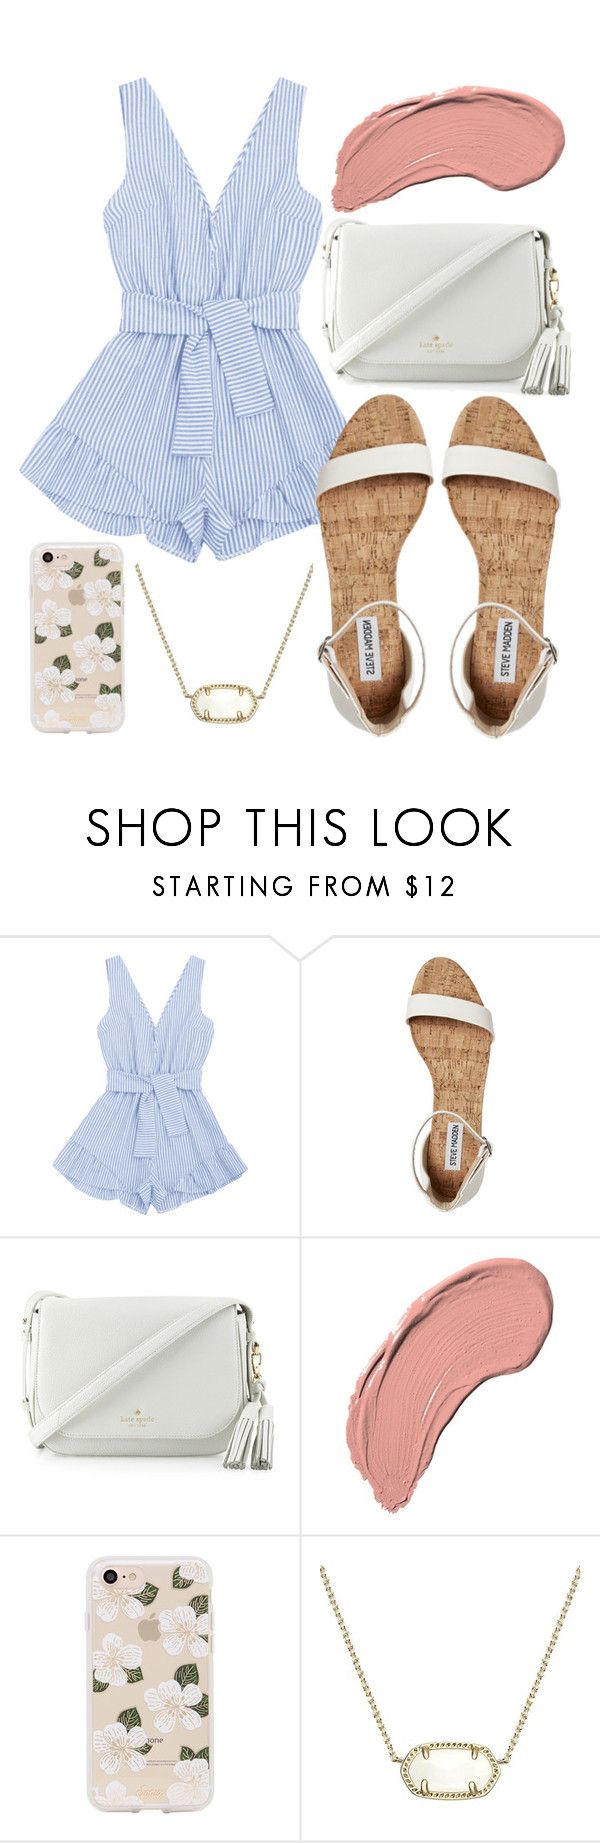 """Dinner date?"" by jadenriley21 ❤ liked on Polyvore featuring Kate Spade, NYX, Sonix and Kendra Scott"